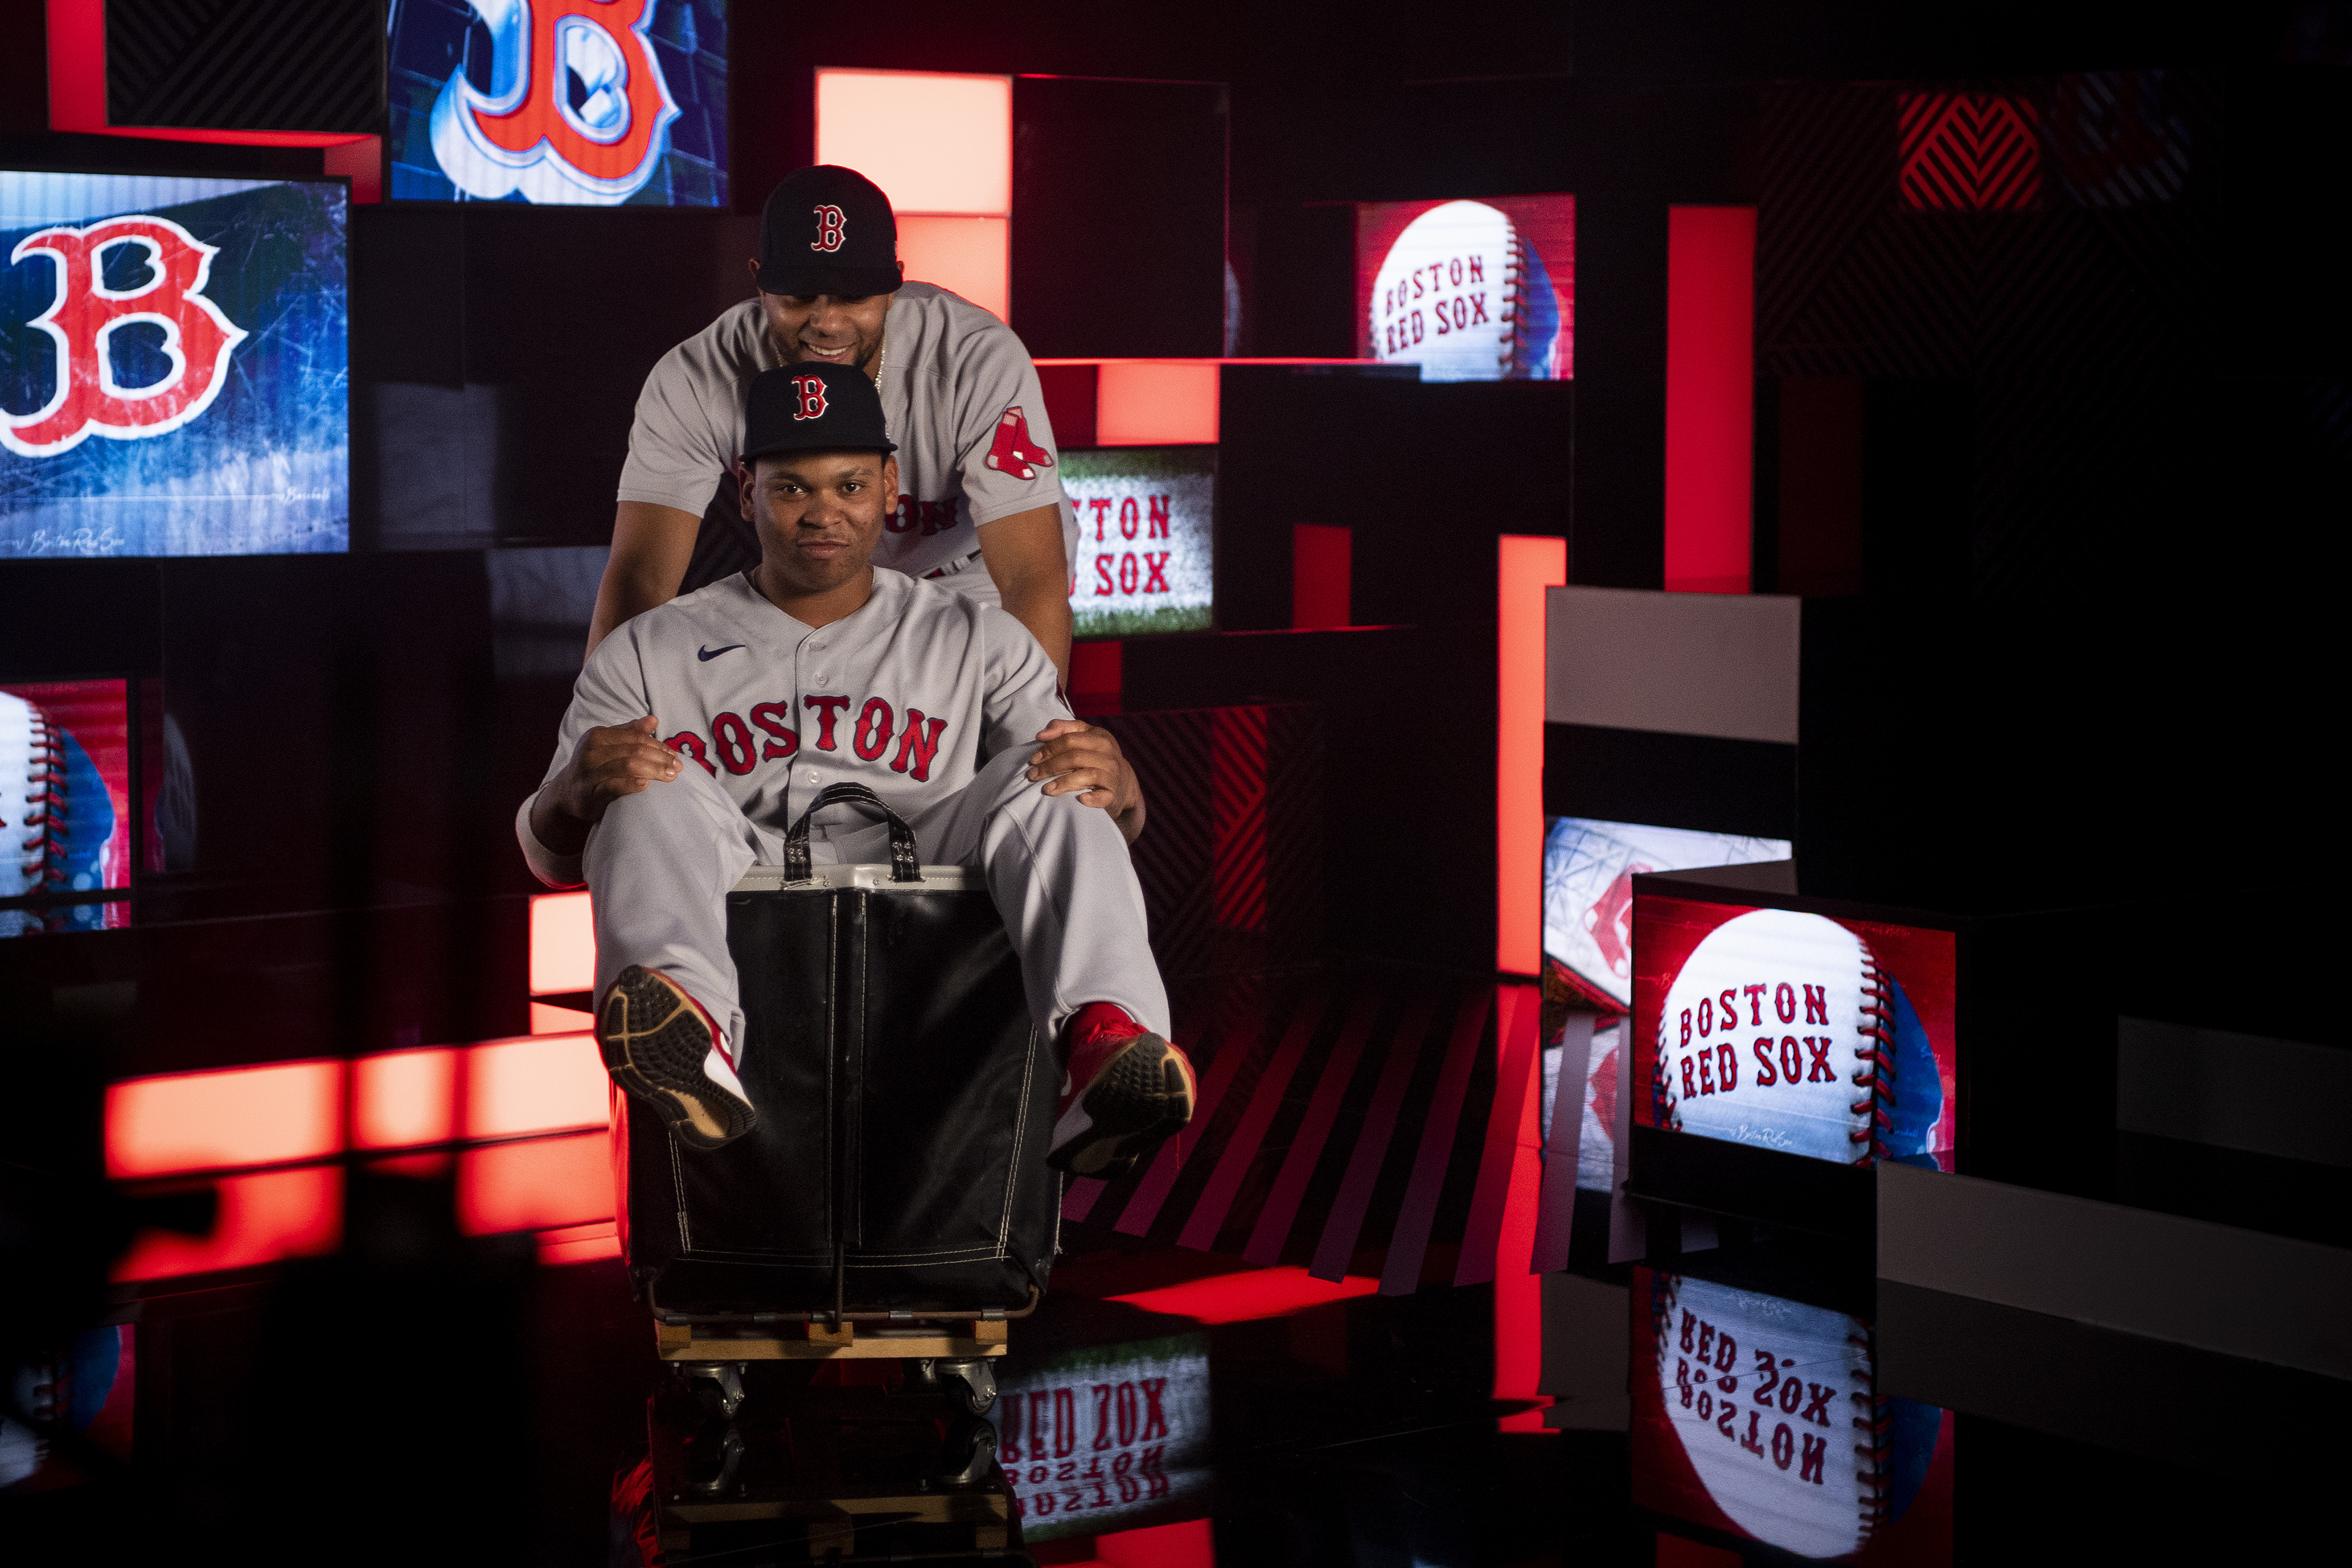 American League Championship Series Boston Red Sox Workout